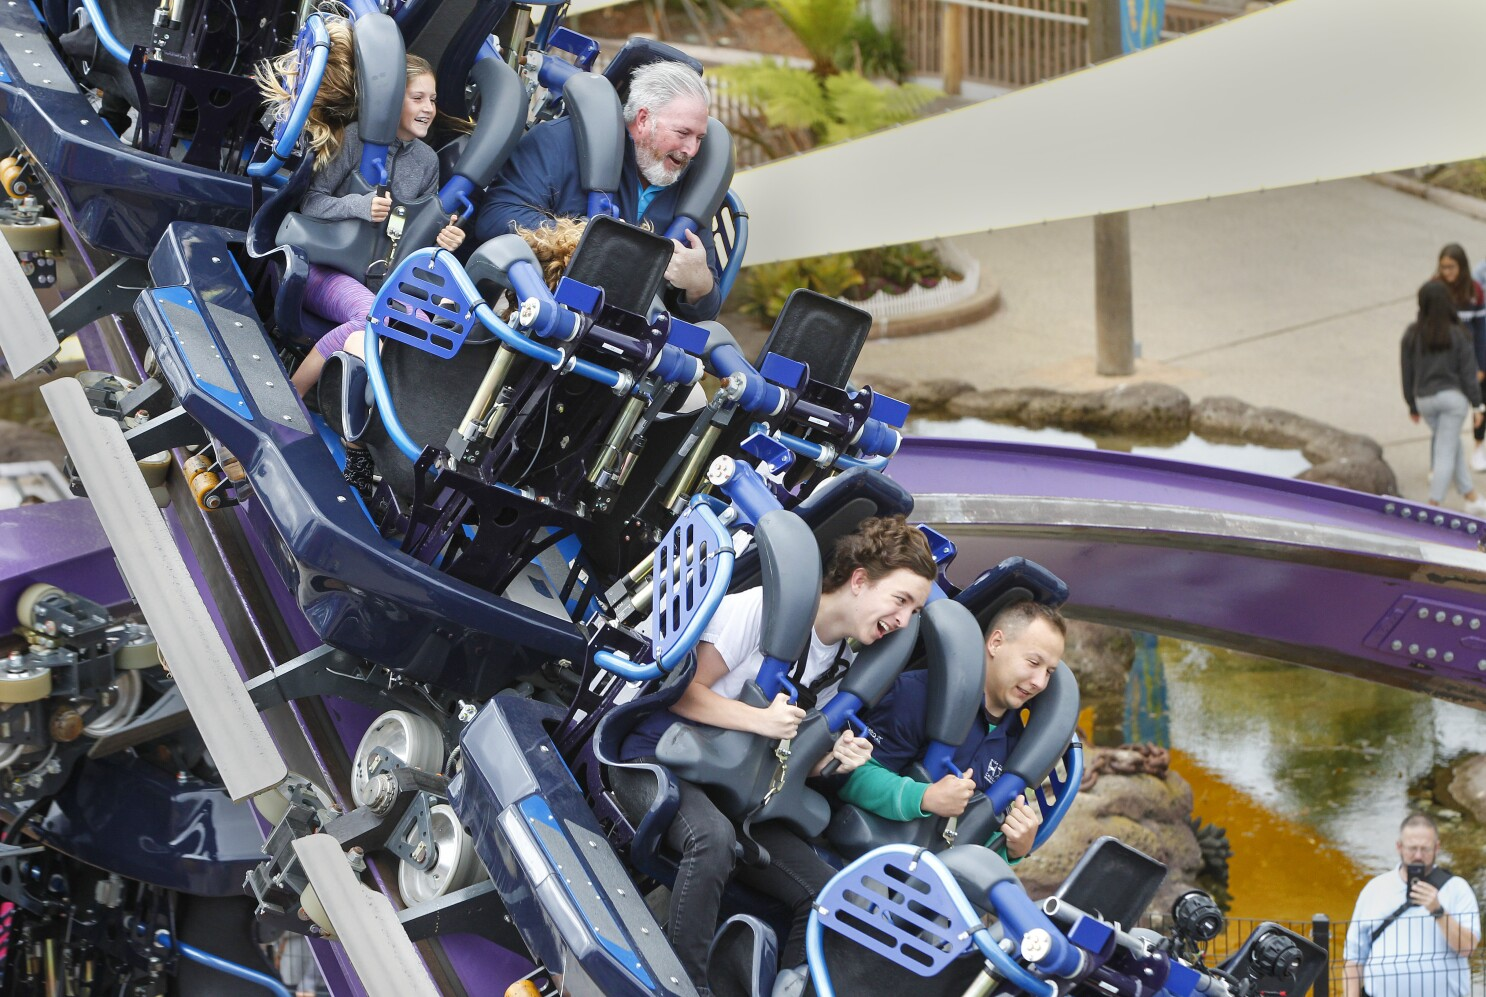 Tidal Twister reopens at SeaWorld after being shut down for several